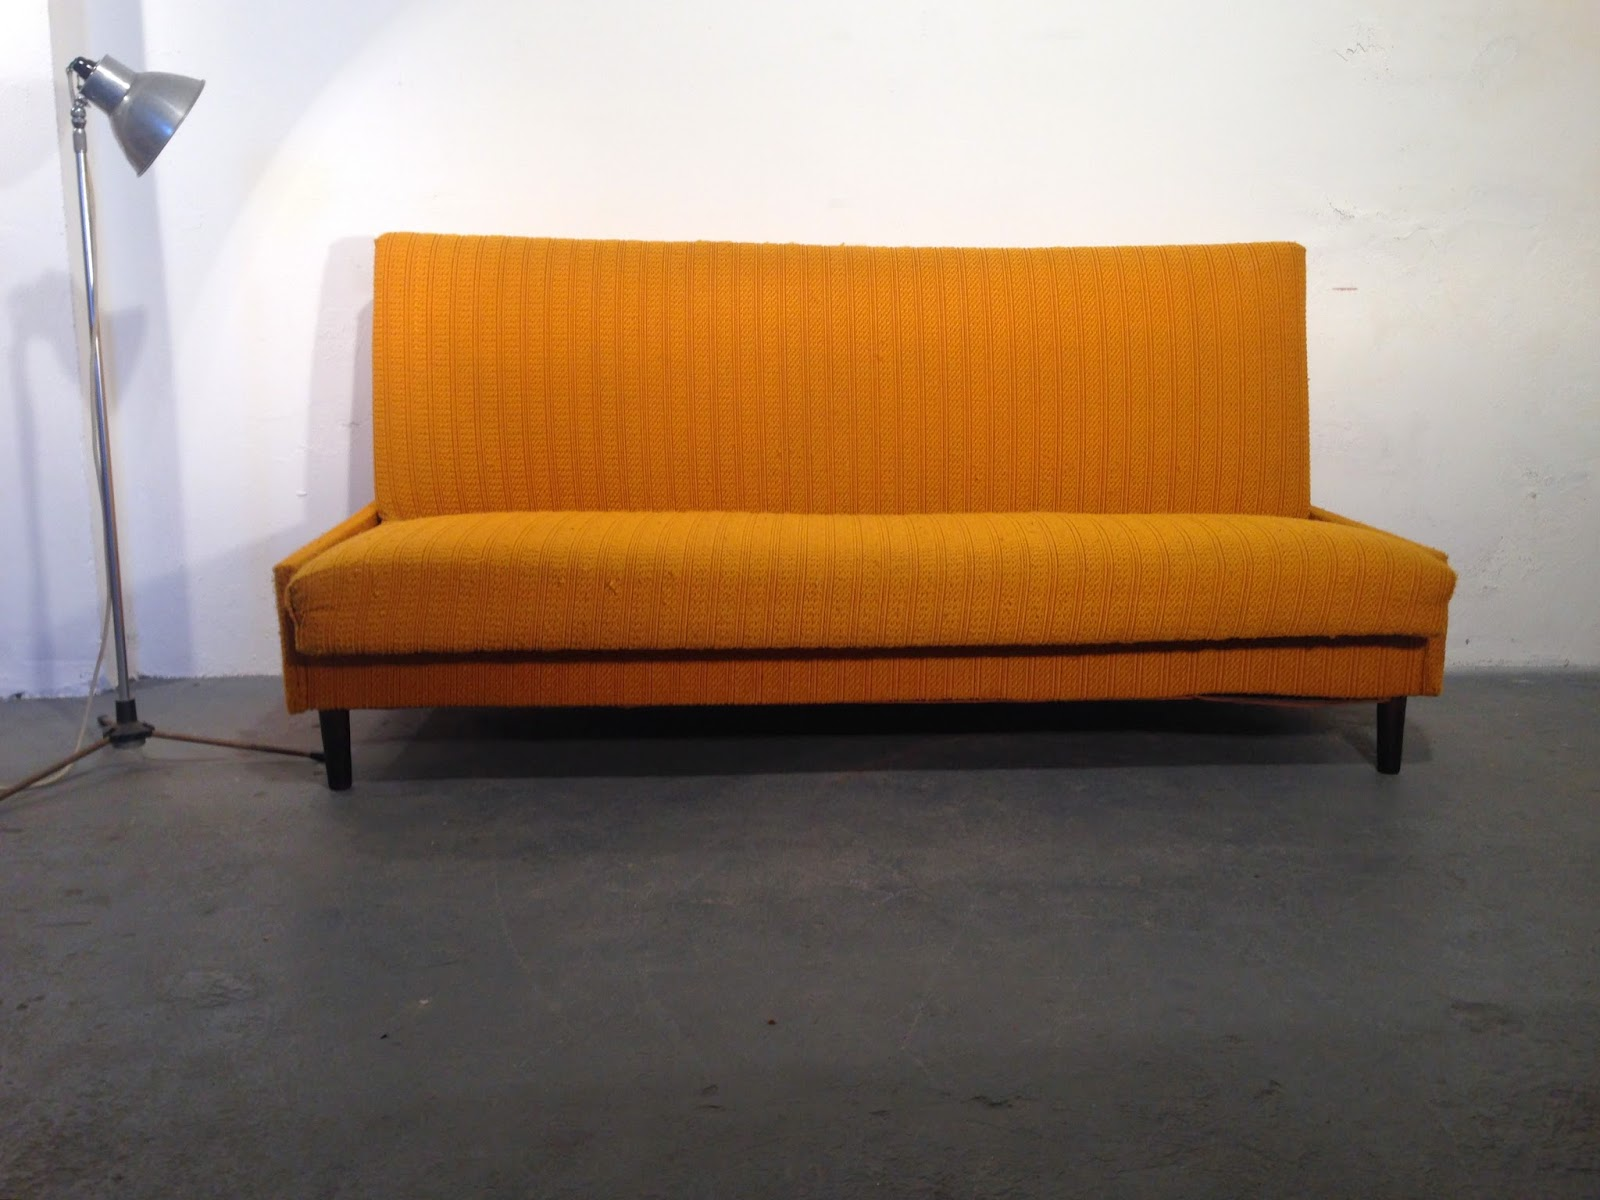 funky sofas ireland standard sofa dimensions in feet vintage furniture ocd 1960s bed